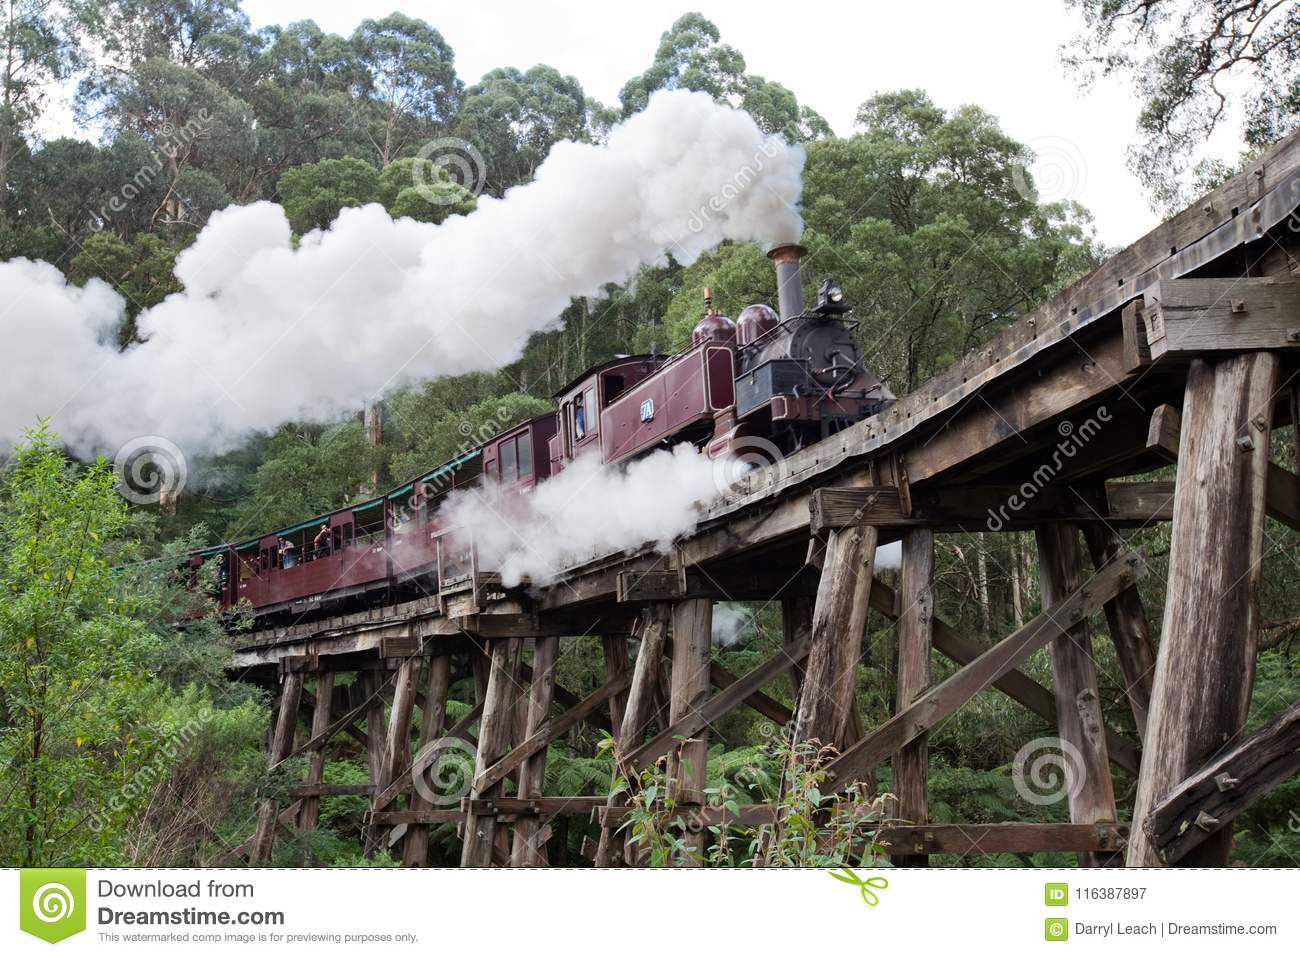 The iconic Pulling Billy Steam Train on the Trestle bridge in th